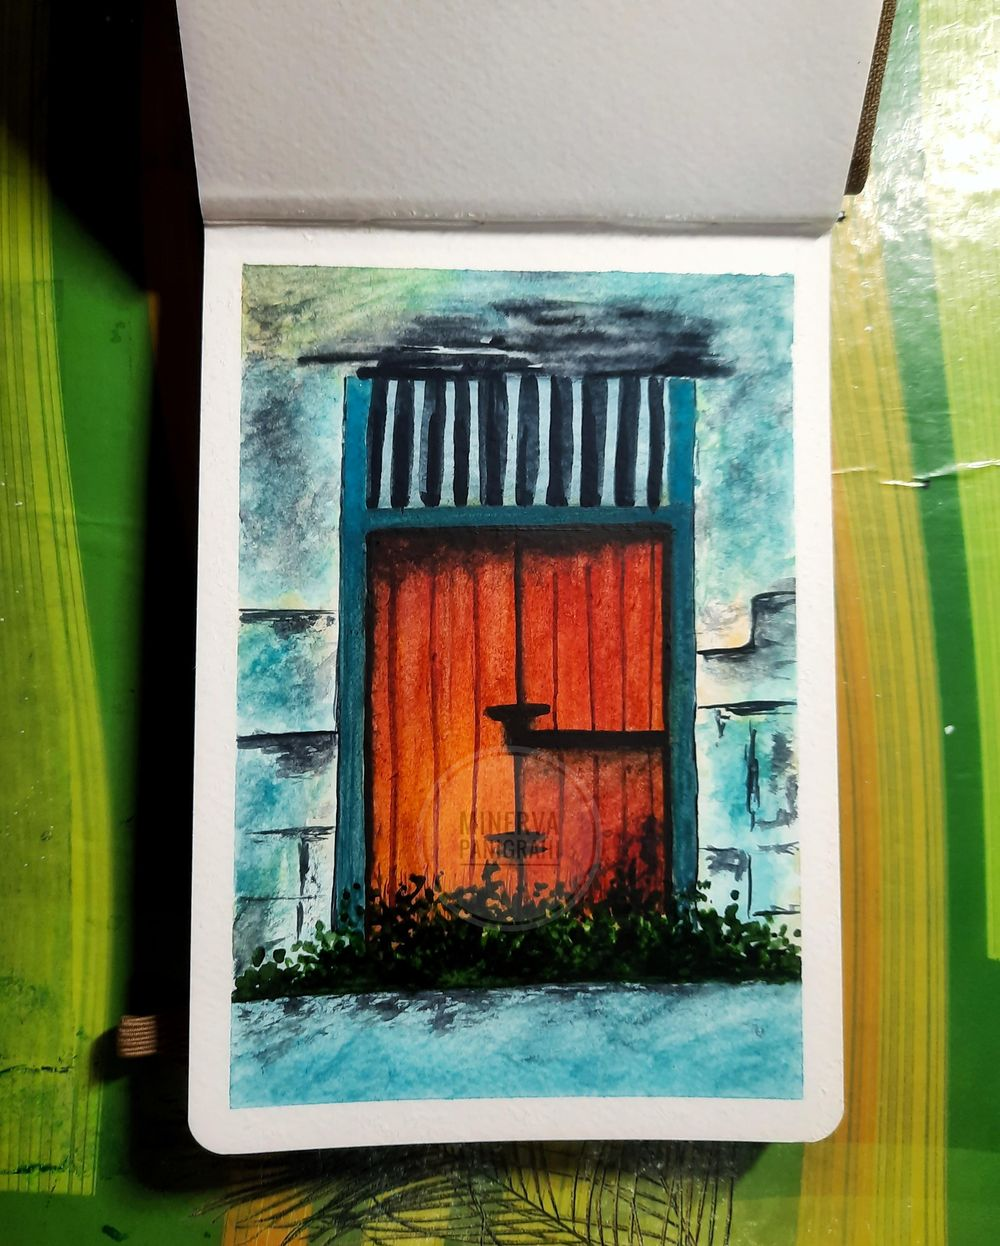 Old Rustic Doors - image 1 - student project